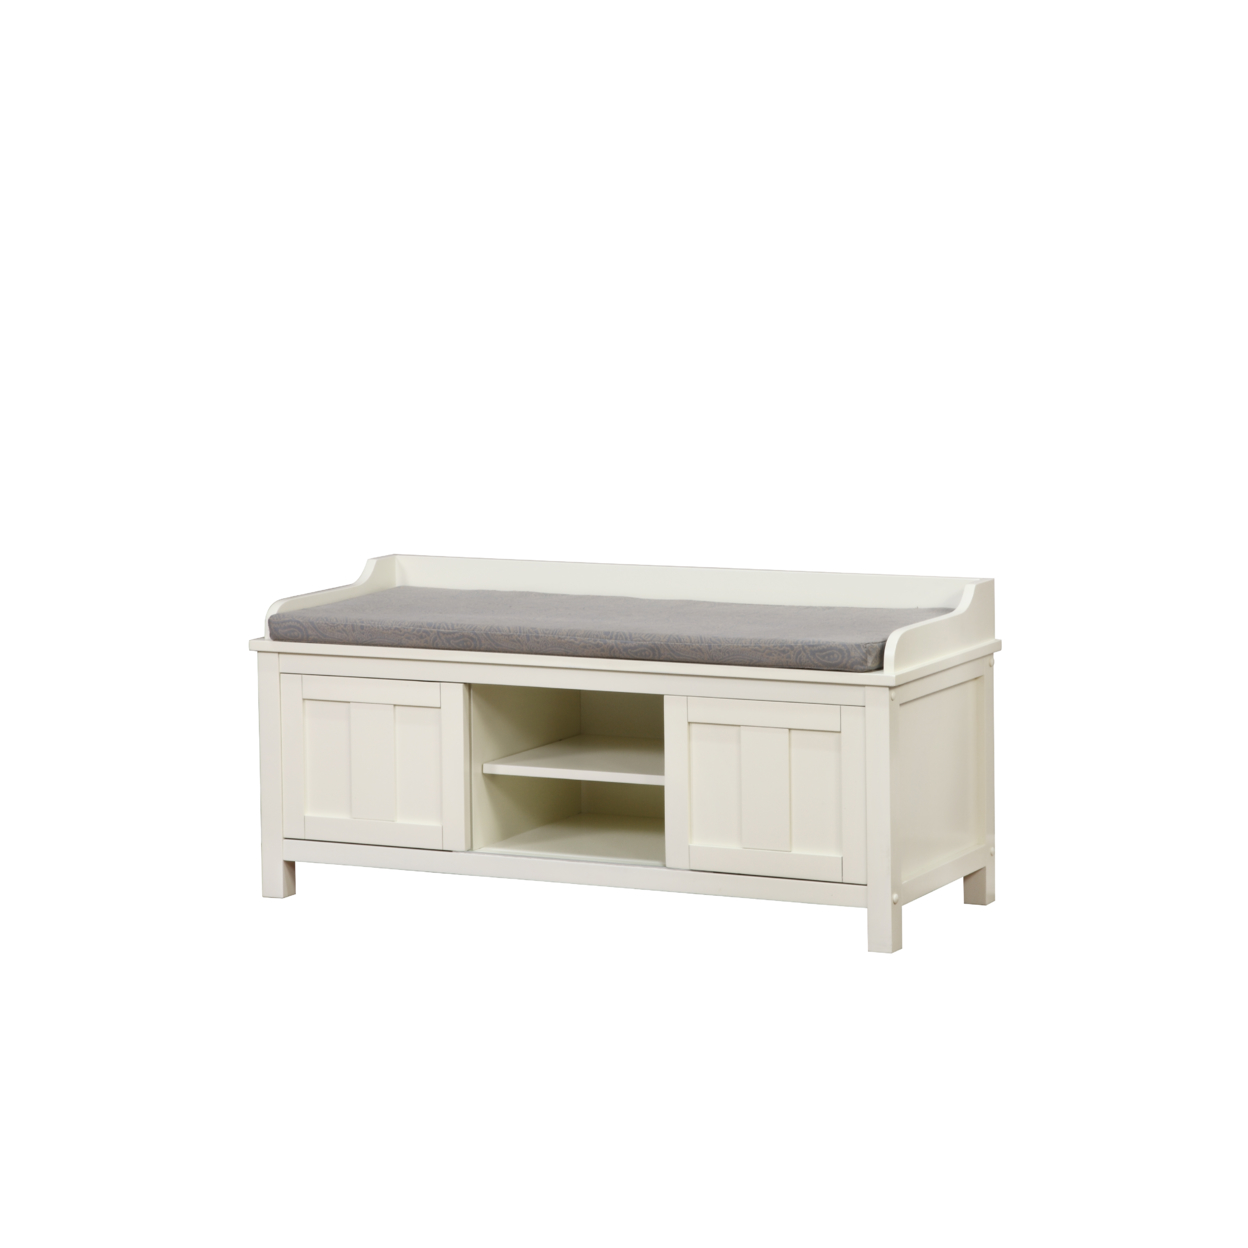 Lakeville White Storage Bench guidecraft classic white storage bench